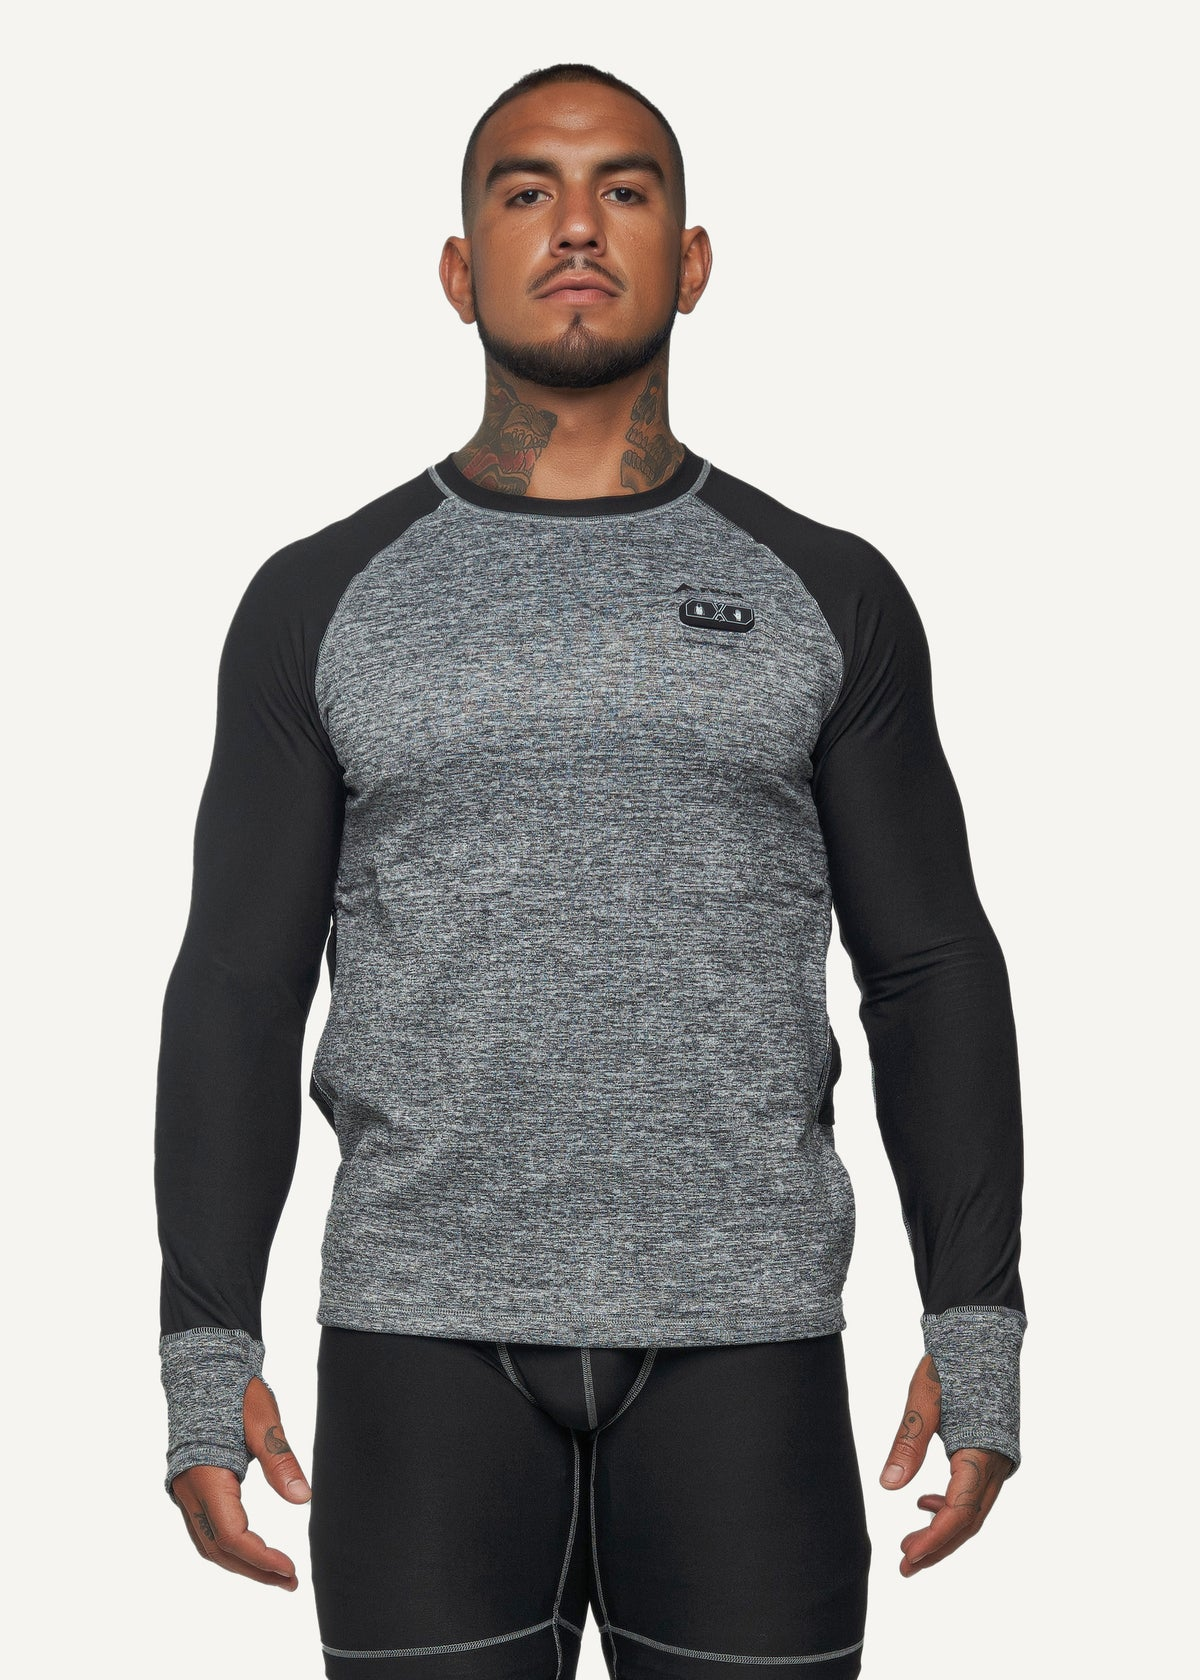 FNDN Heated Skin-Fit Base Layer PRO - Unisex